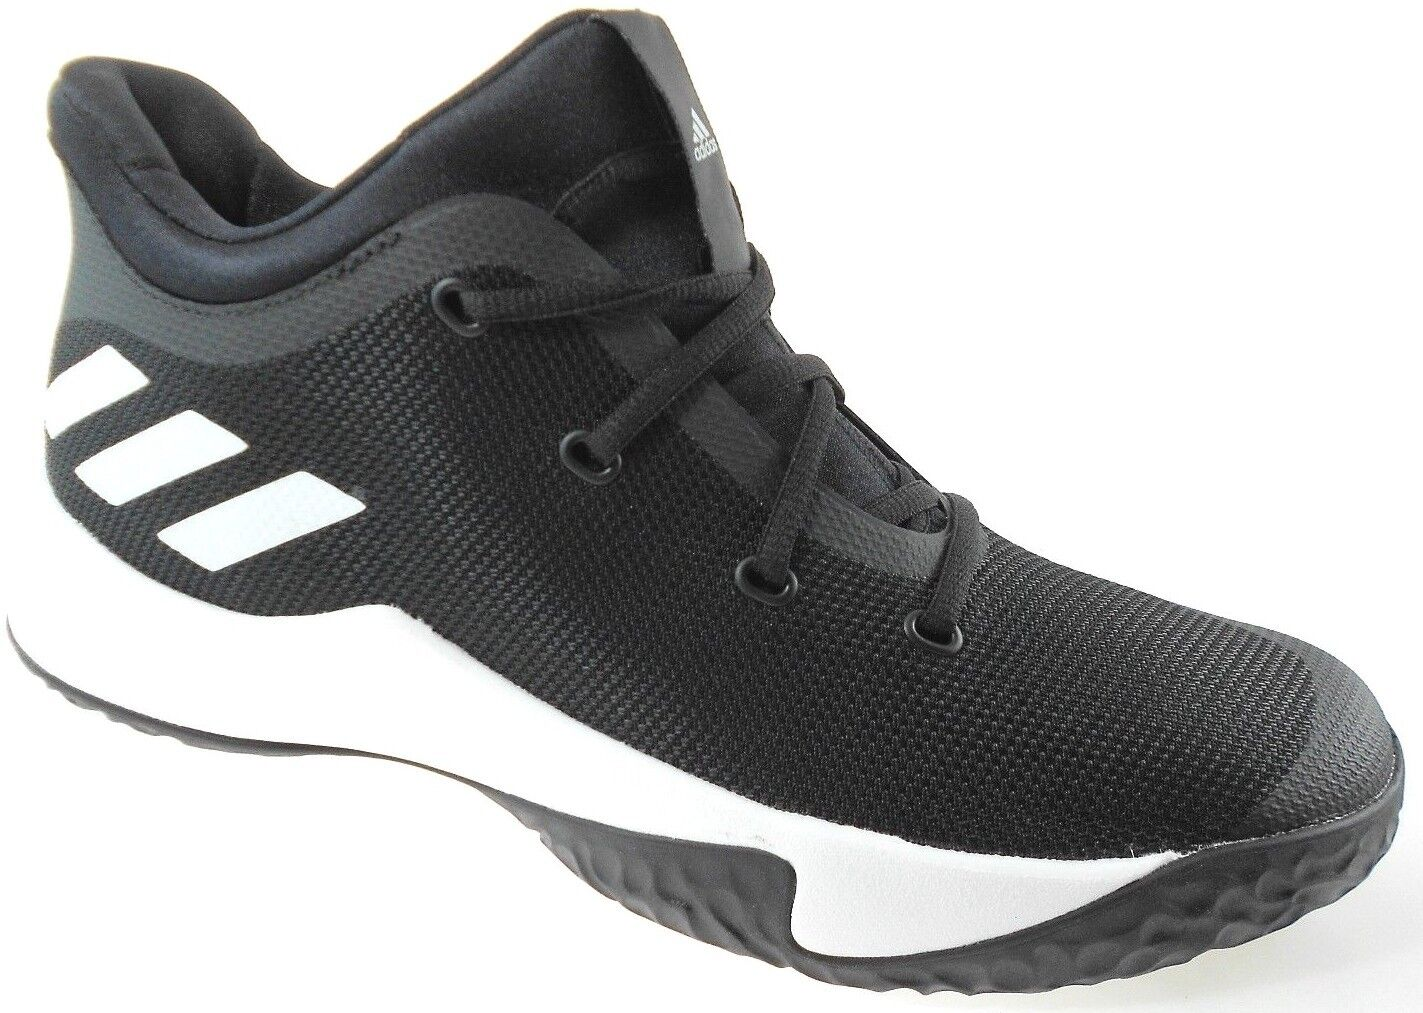 ADIDAS RISE BLACK/WHITE UP 2 MEN'S BLACK/WHITE RISE BASKETBALL SHOES, CQ0559 80cfdc